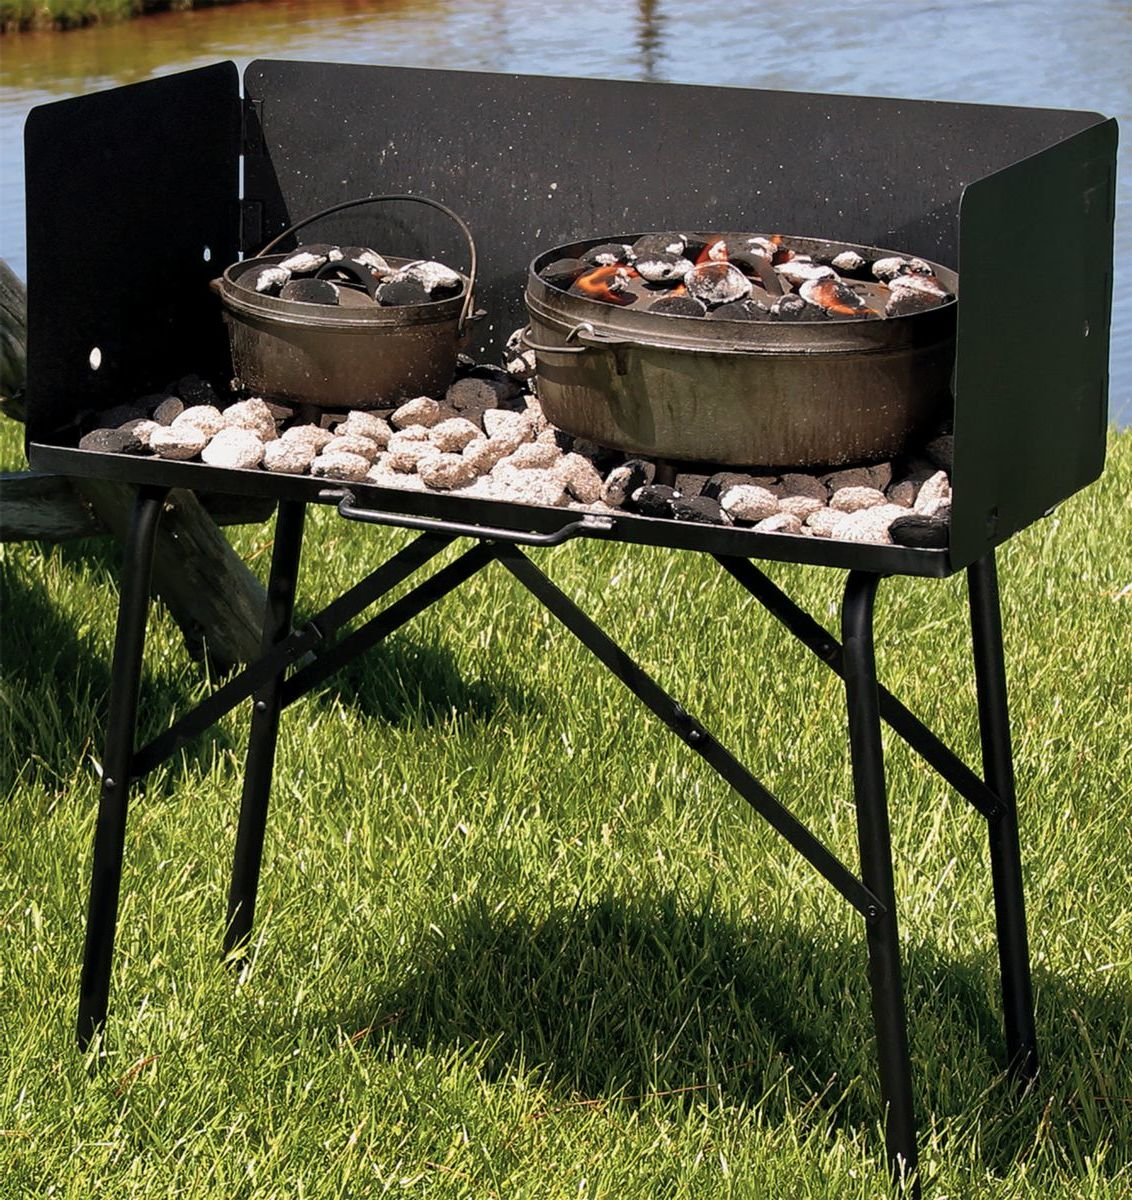 Lodge™ Camp Dutch Oven Cooking Table with Tall Windscreen